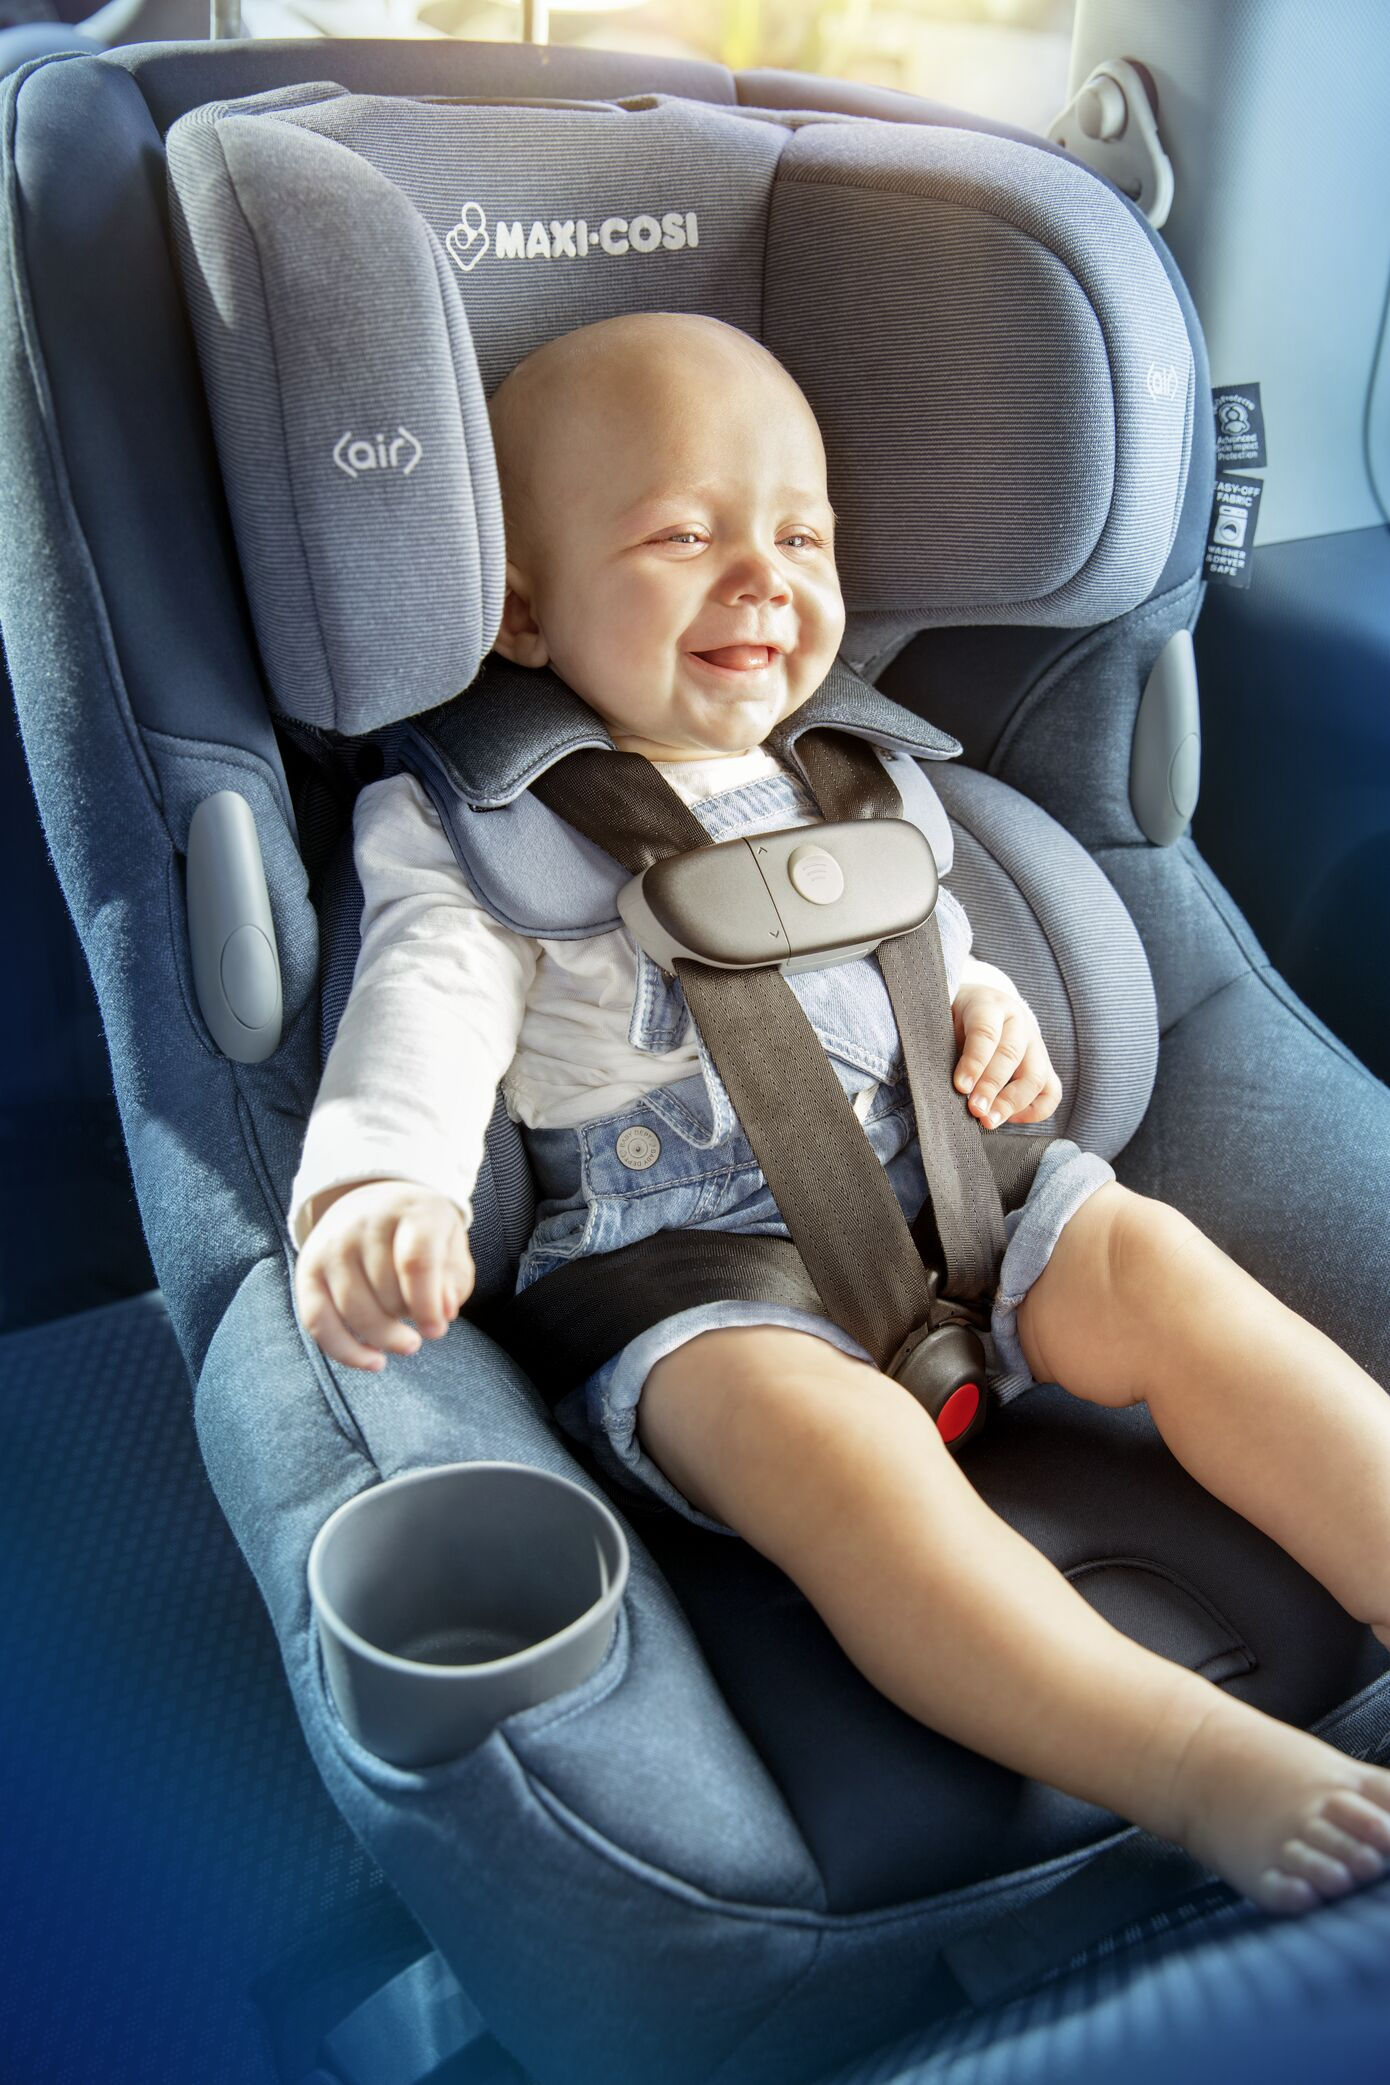 Maxi-Cosi car seats: did you know? - Maxi-